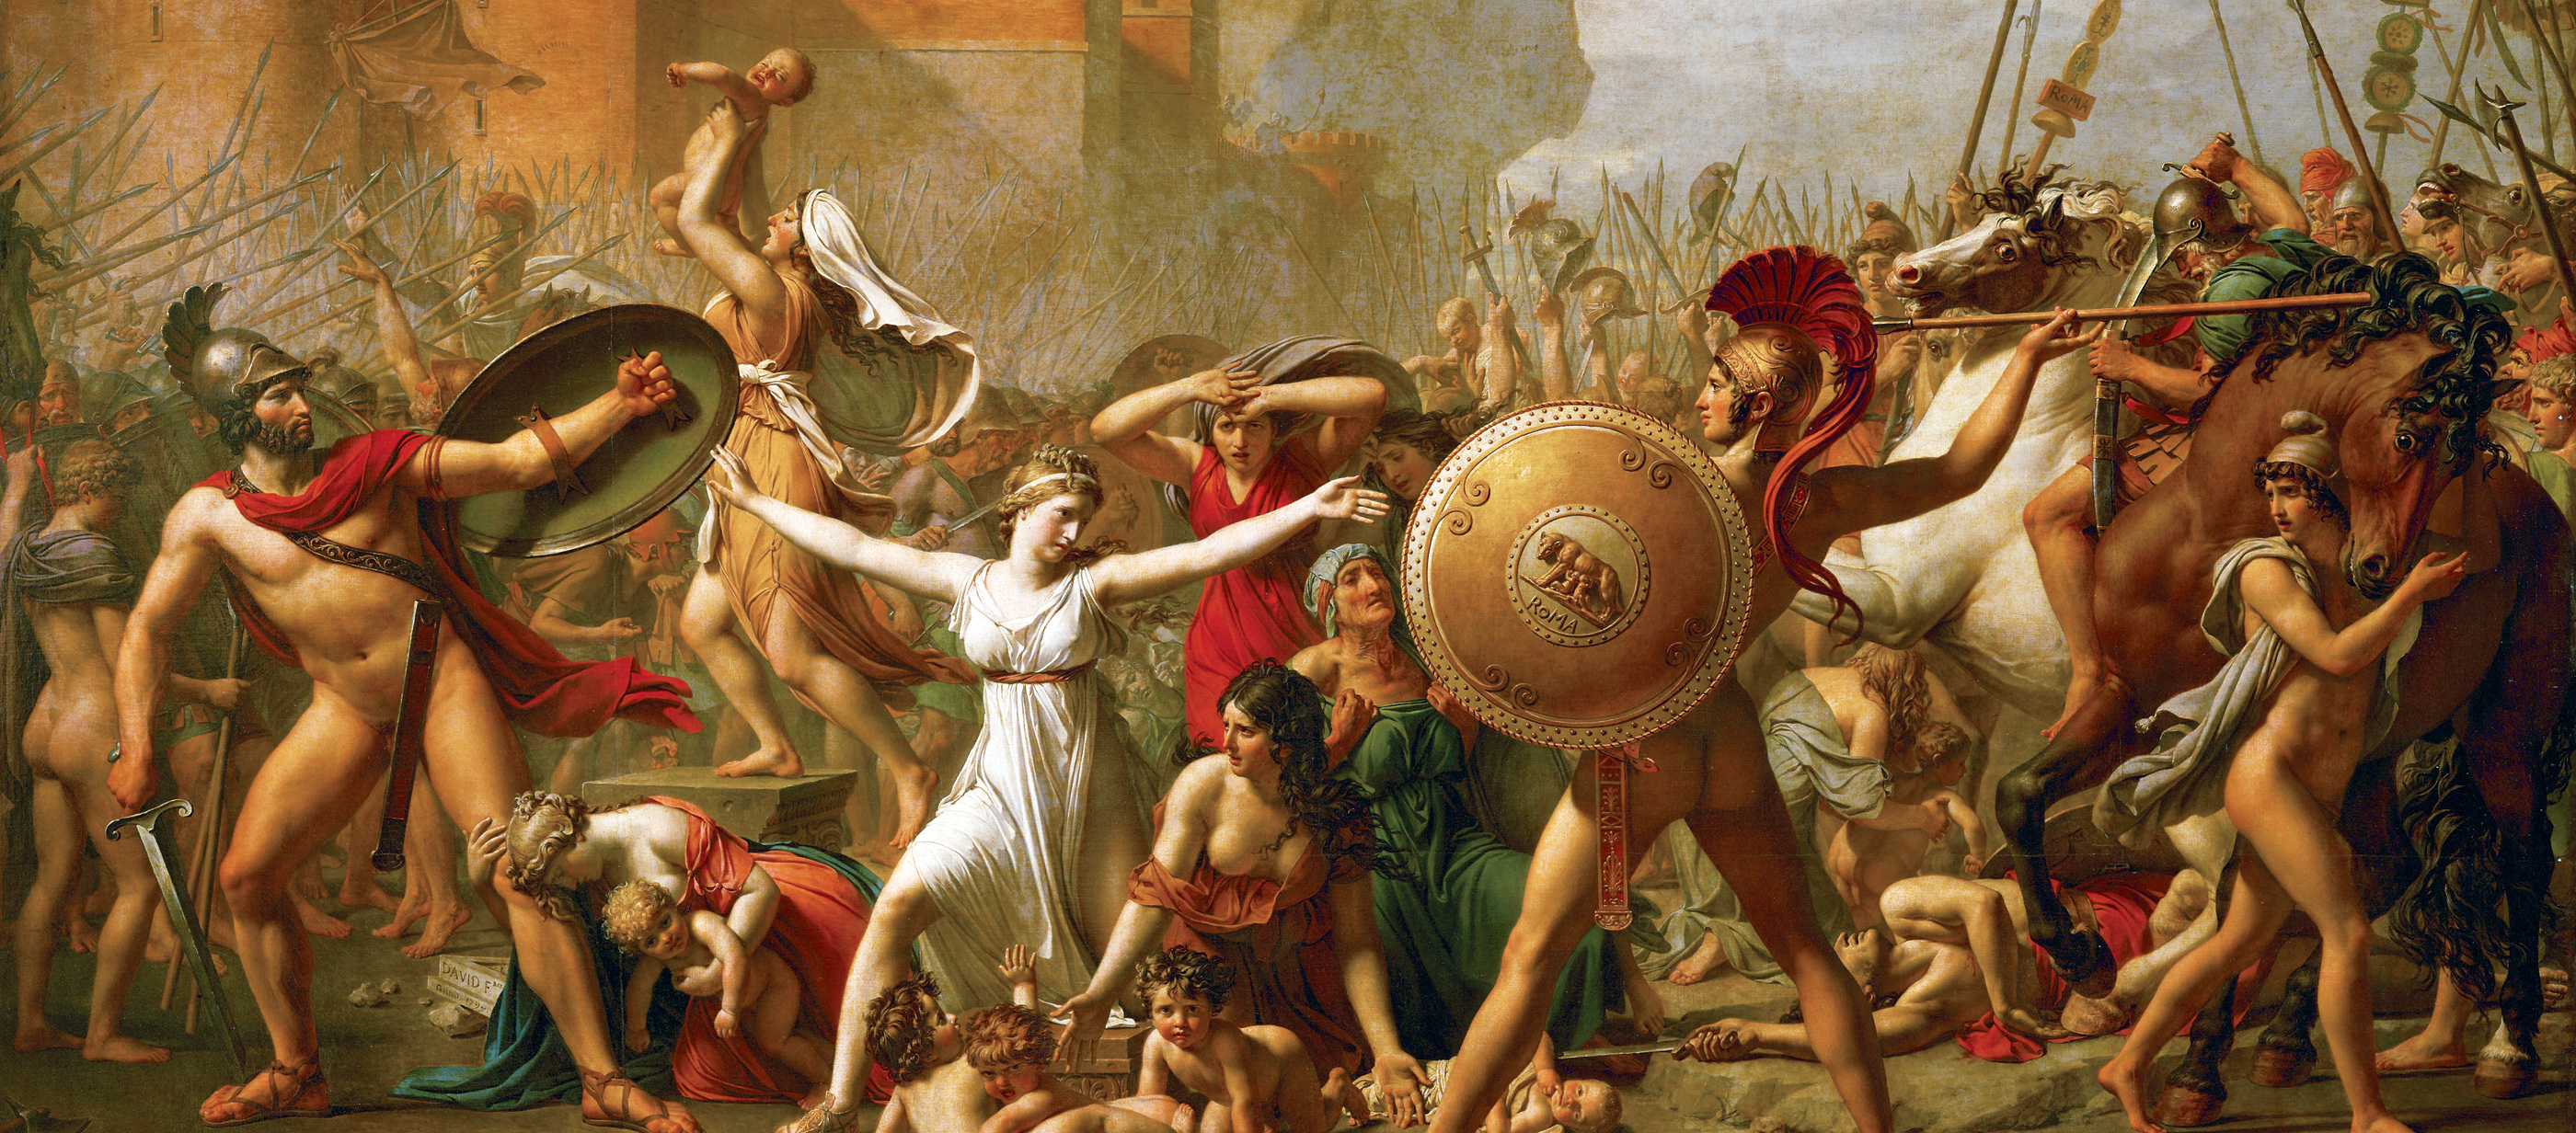 The Sabine Women Halting the Battle Between Romans and Sabines, by Jacques Louis David, 1799. Louvre Museum, Paris.